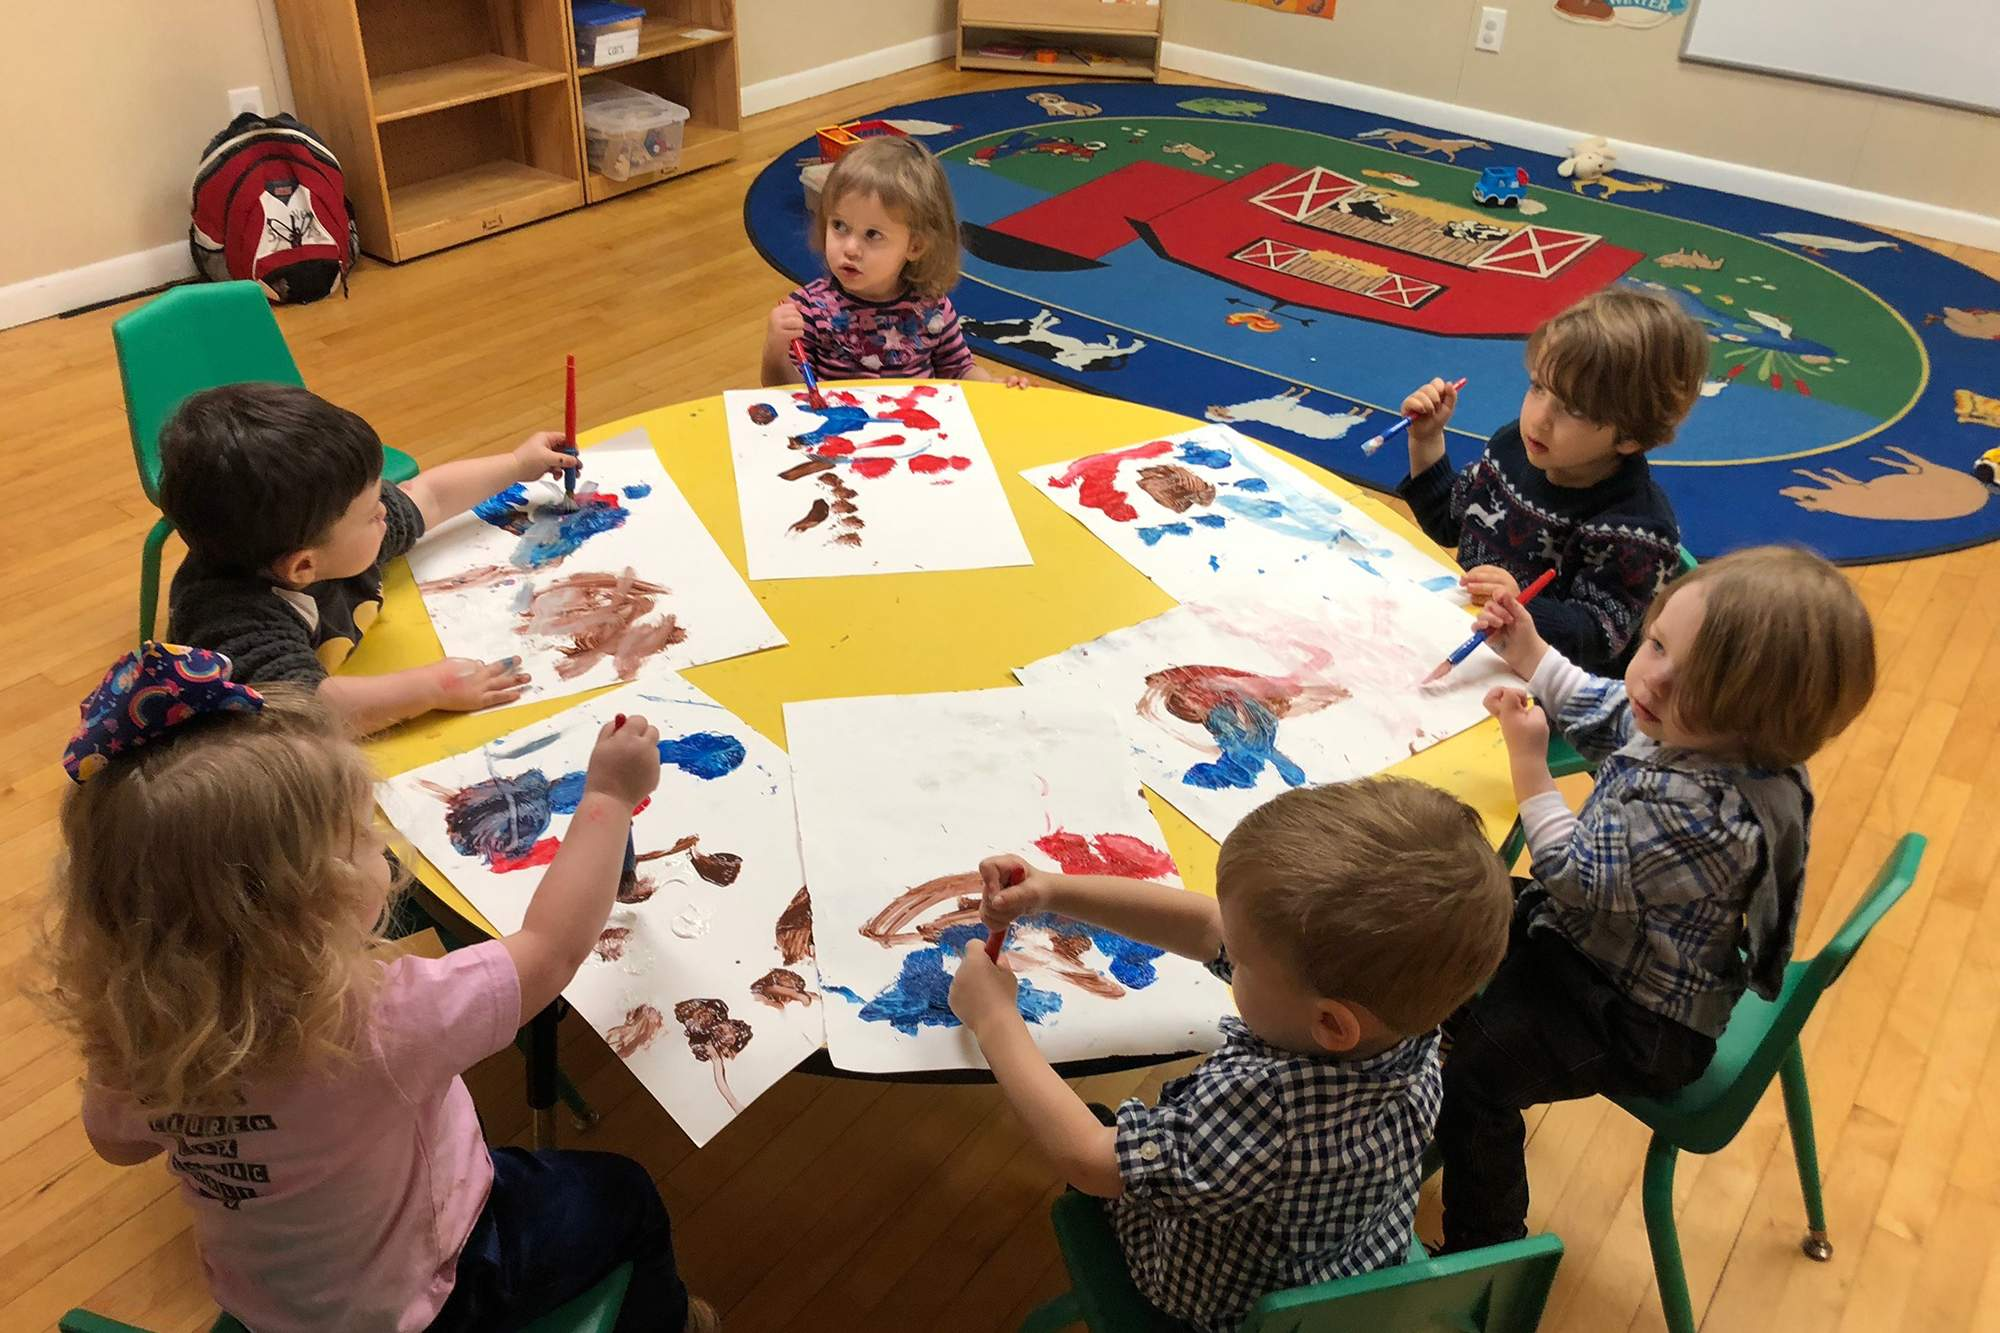 Shalom Yeladim – Judie Gerstein Early Learning Center